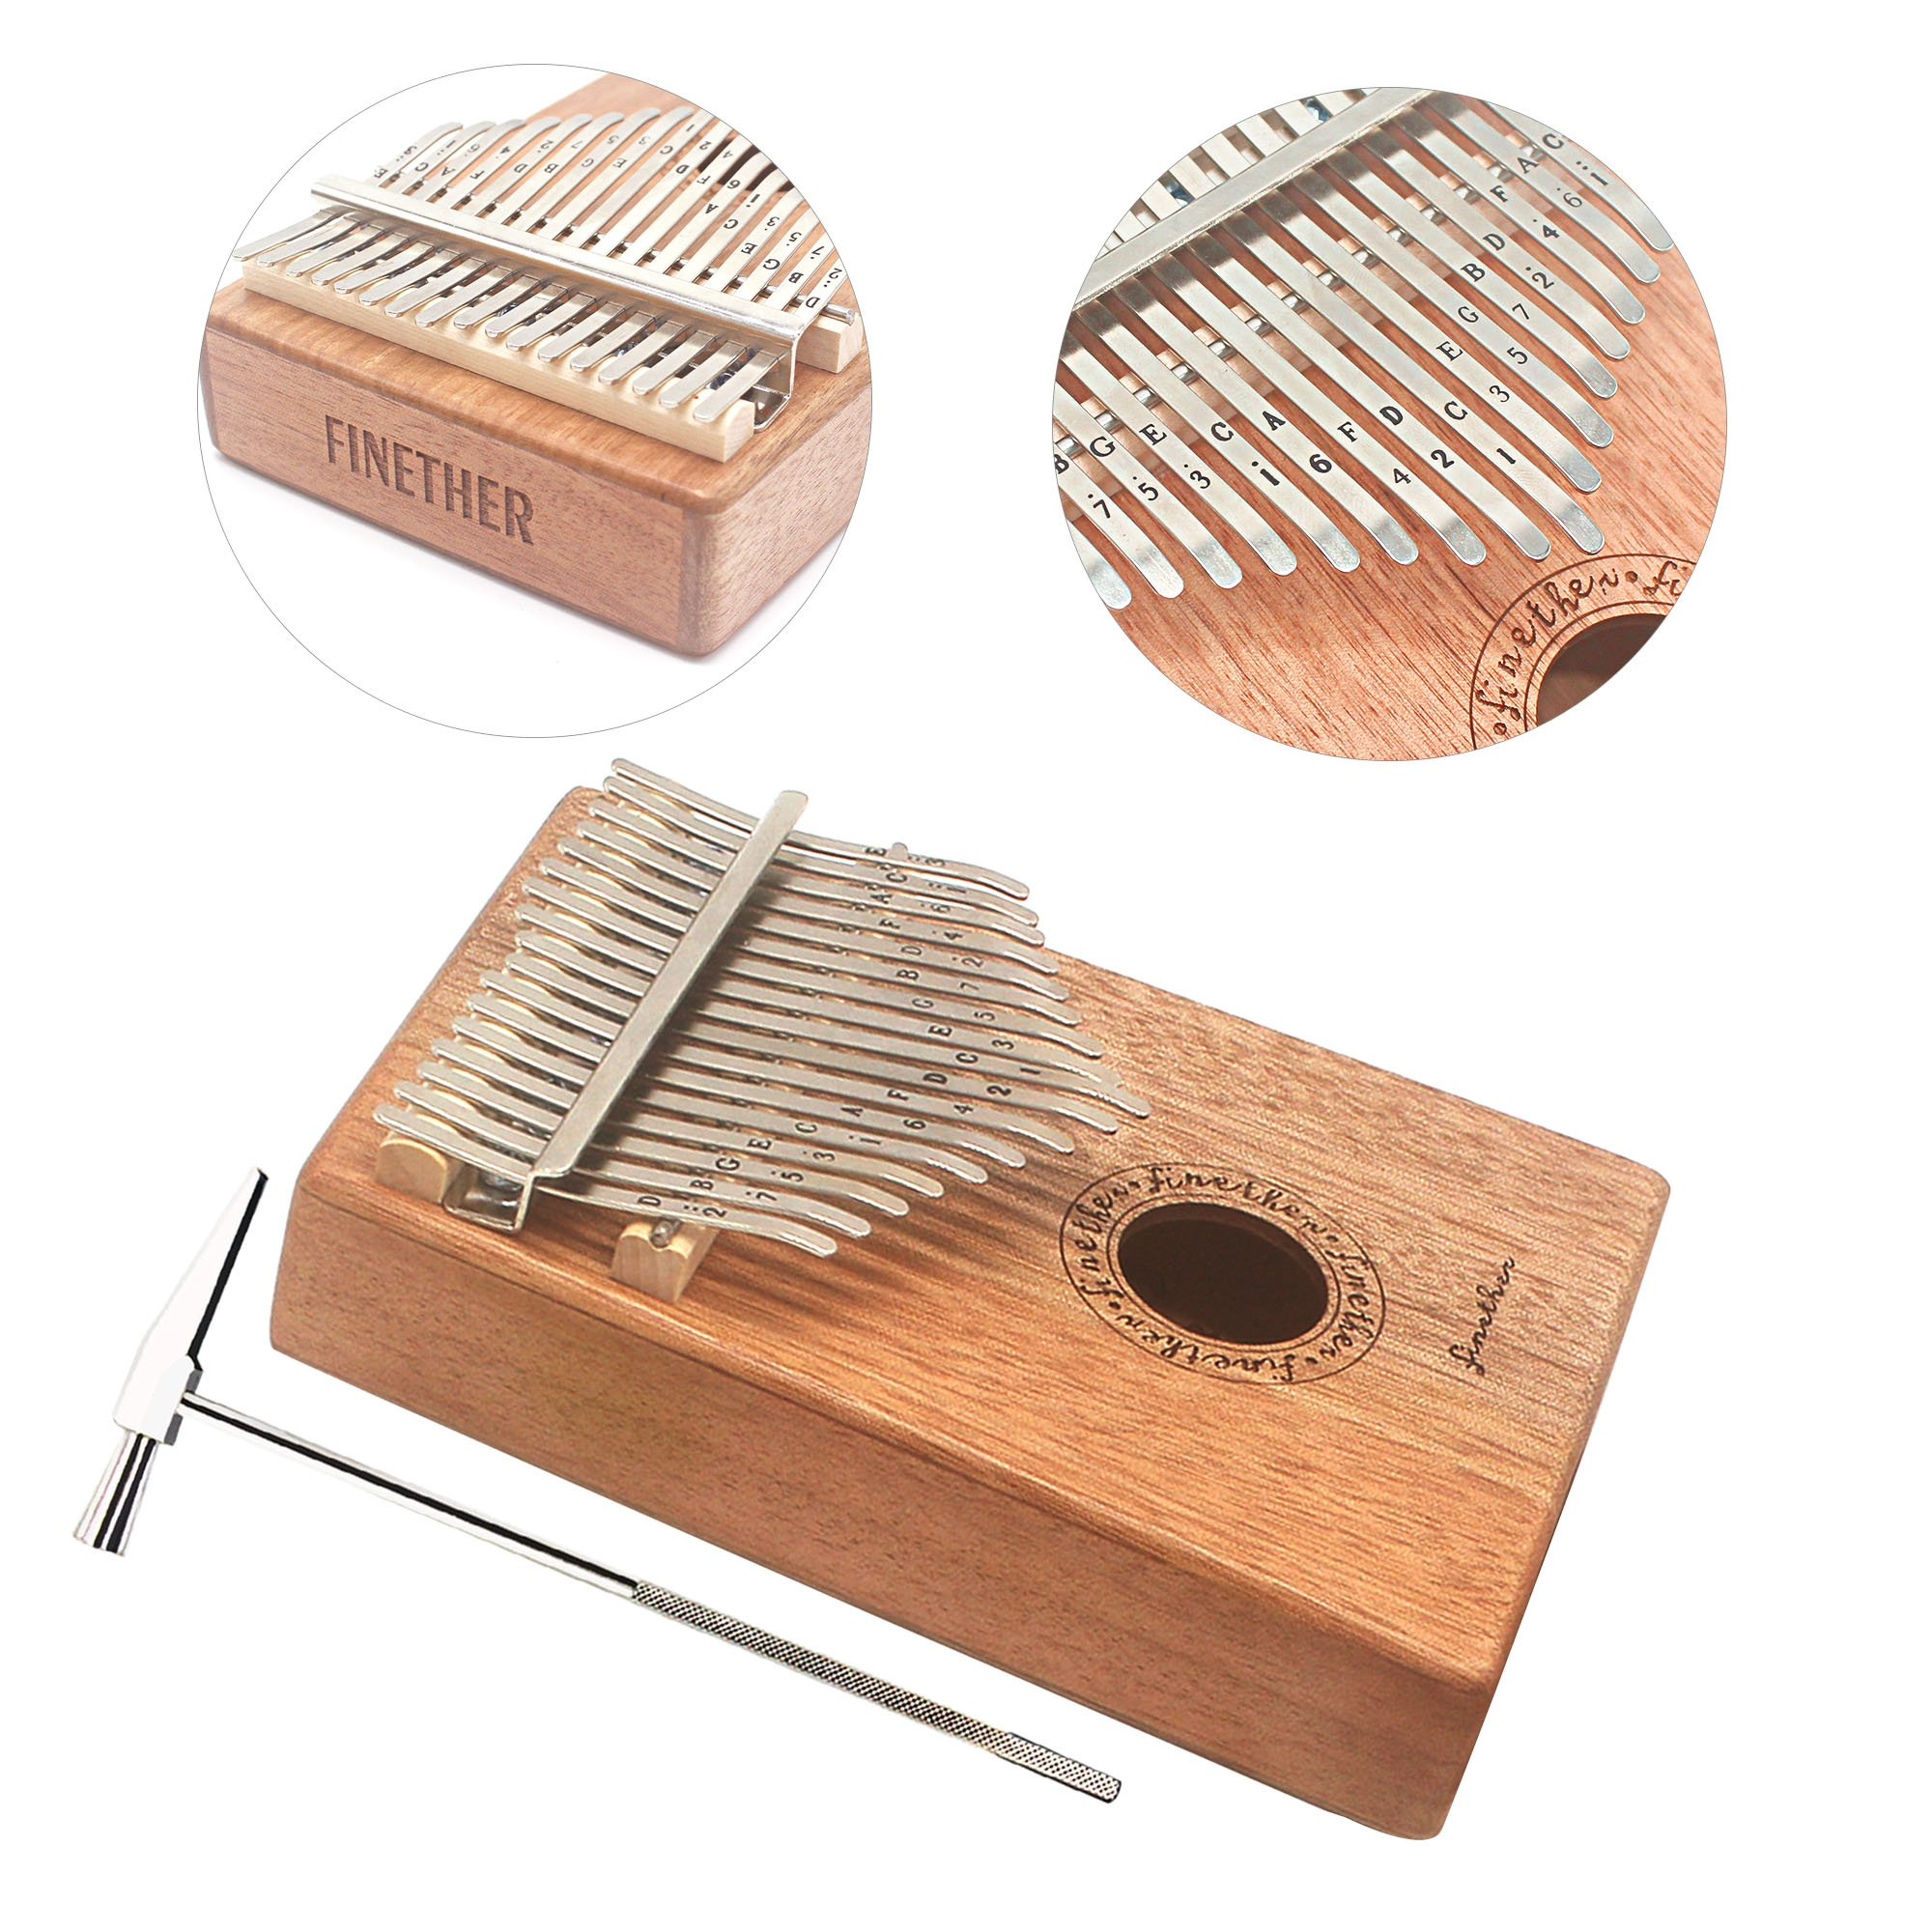 17 Keys Mahogany Kalimba Thumb Piano Wood Mbira Sanza Finger Percussion Pocket Keyboard w/Calibrating Tune Hammer for Beginners and Children (Mahogany) by AHongem (Image #7)